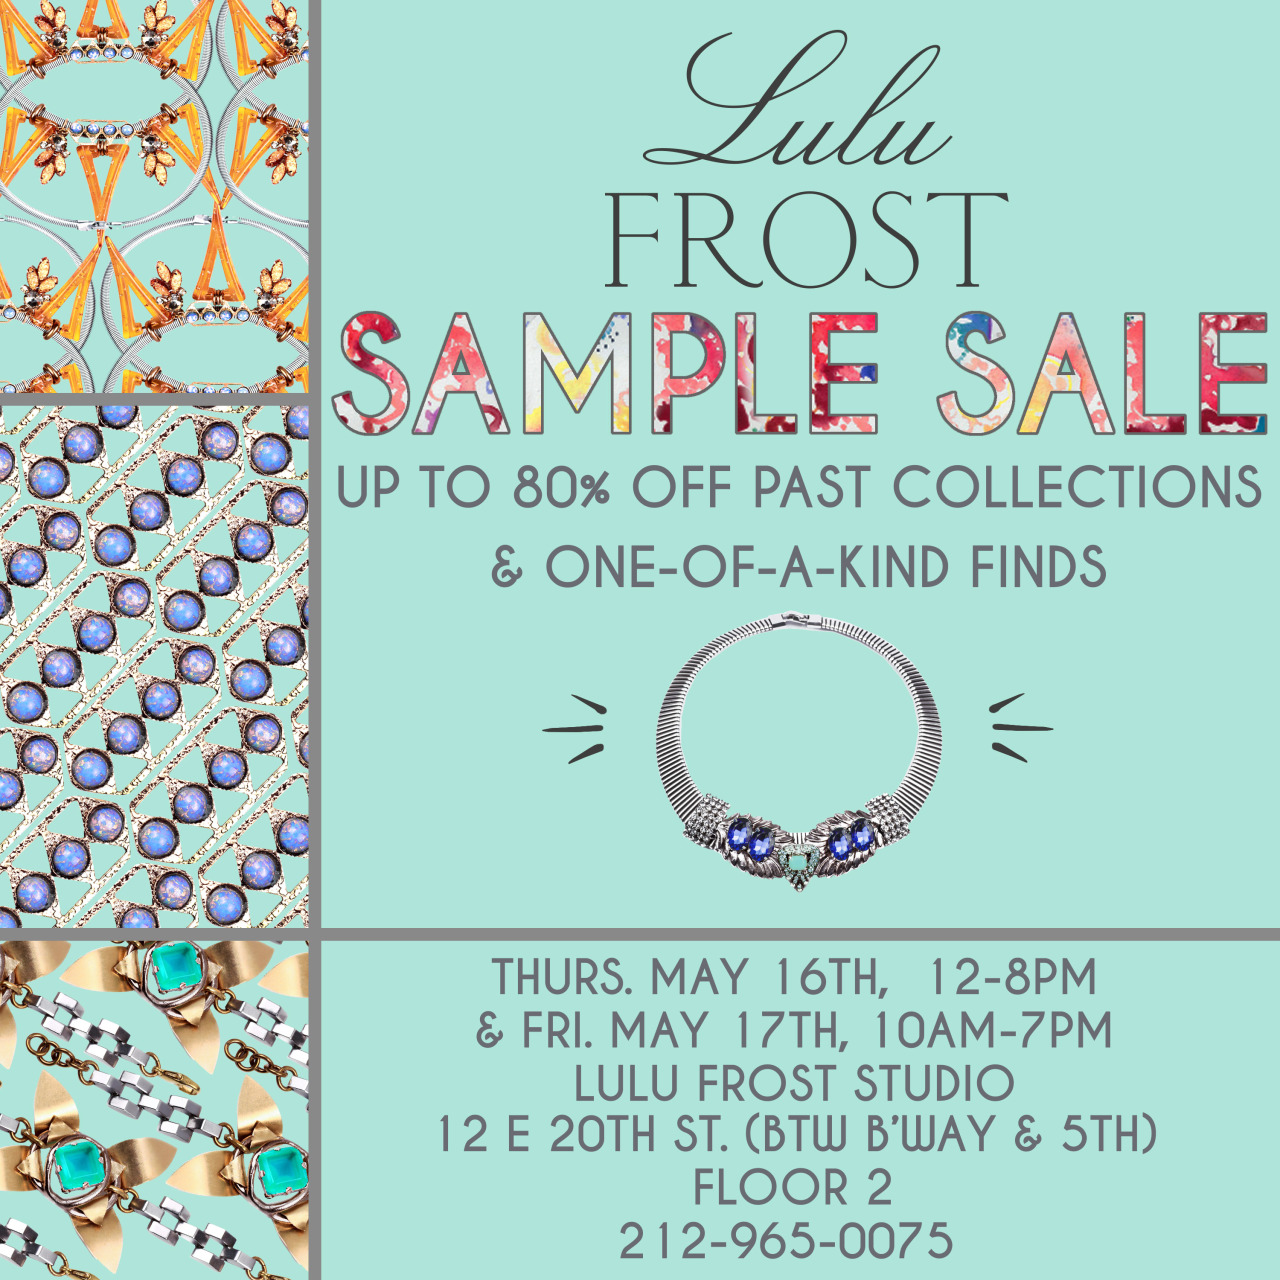 Did you hear? We're having a sample sale….